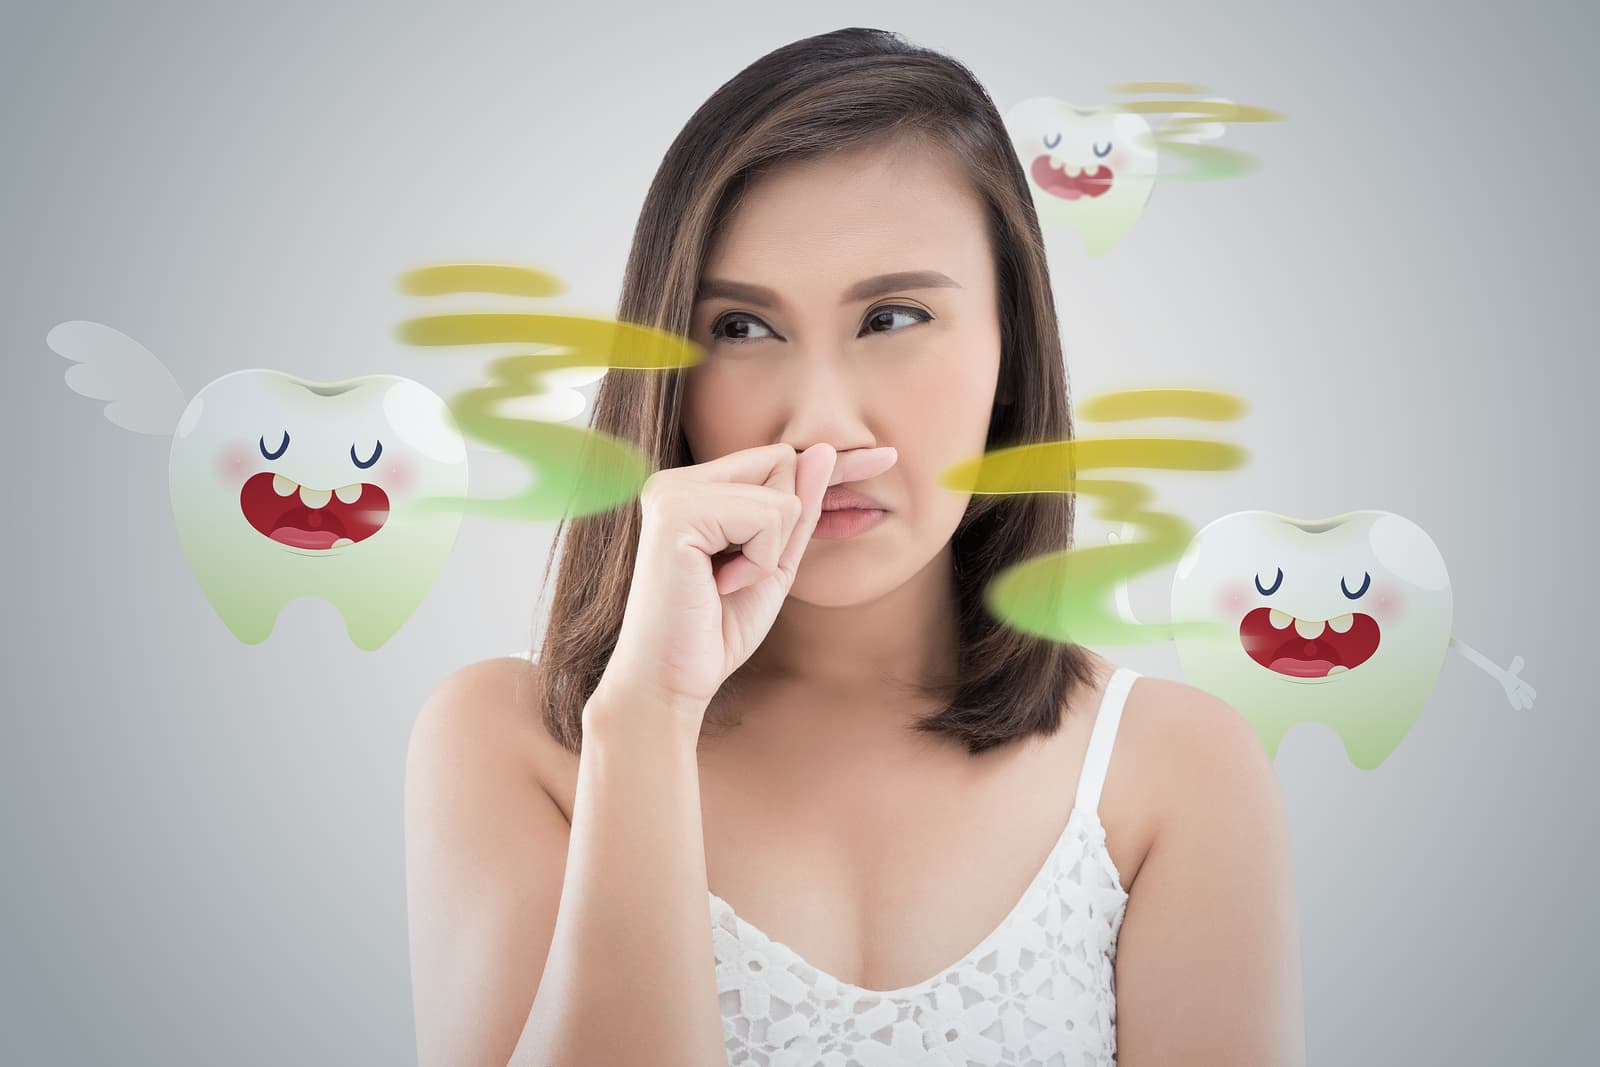 How to Cure Bad Breath Permanently - The Holistic Approach